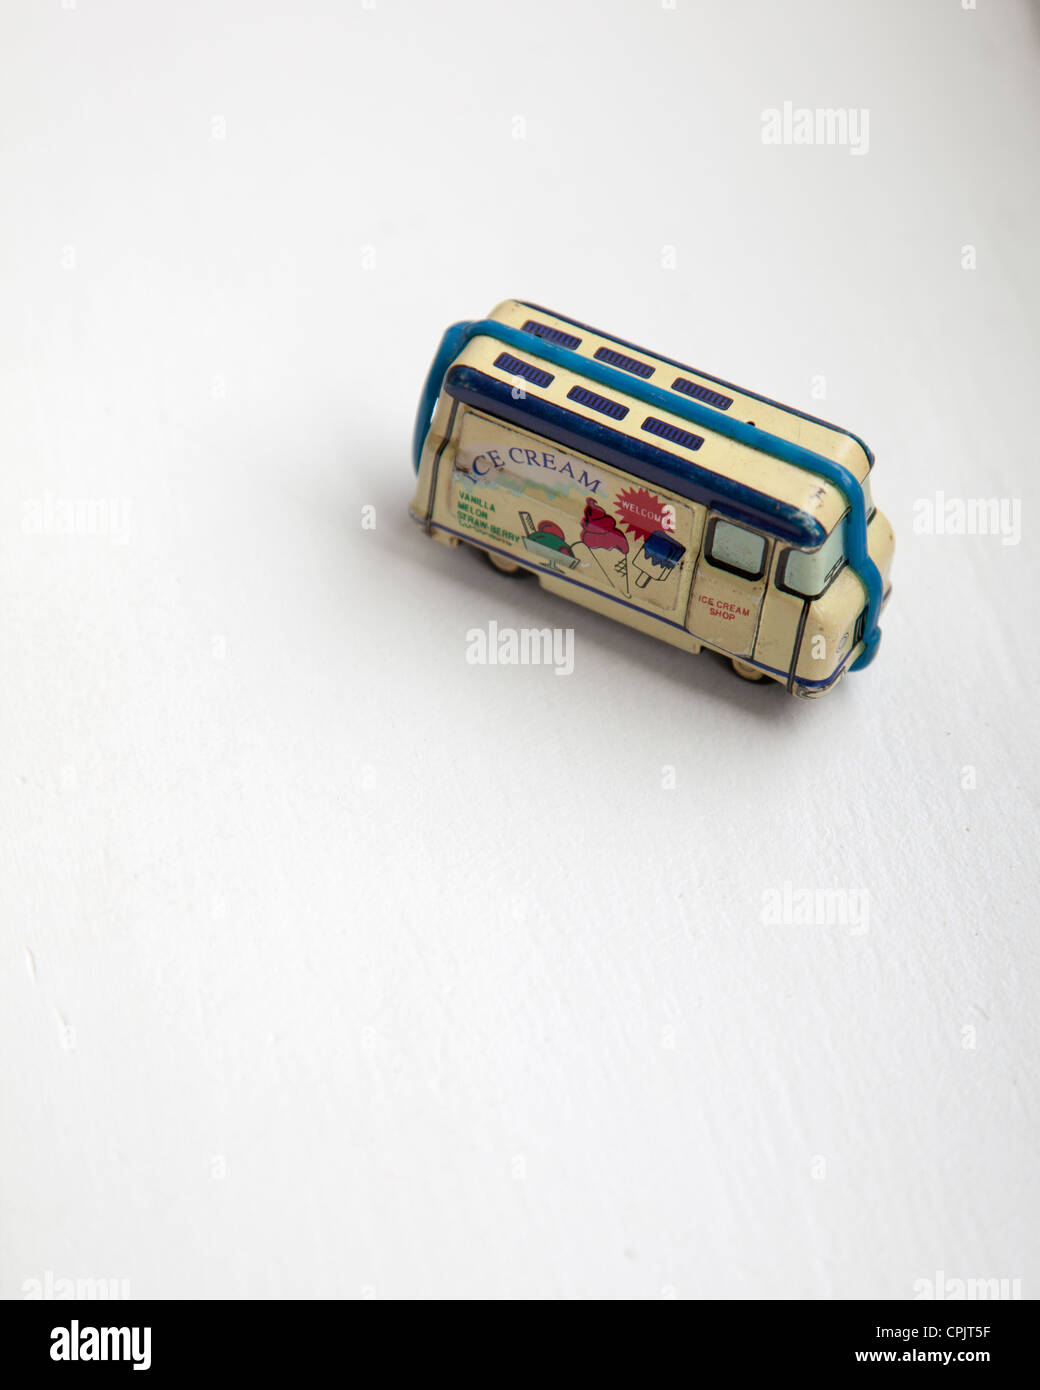 Kaz Ice Cream Van Tin Toy - Stock Image